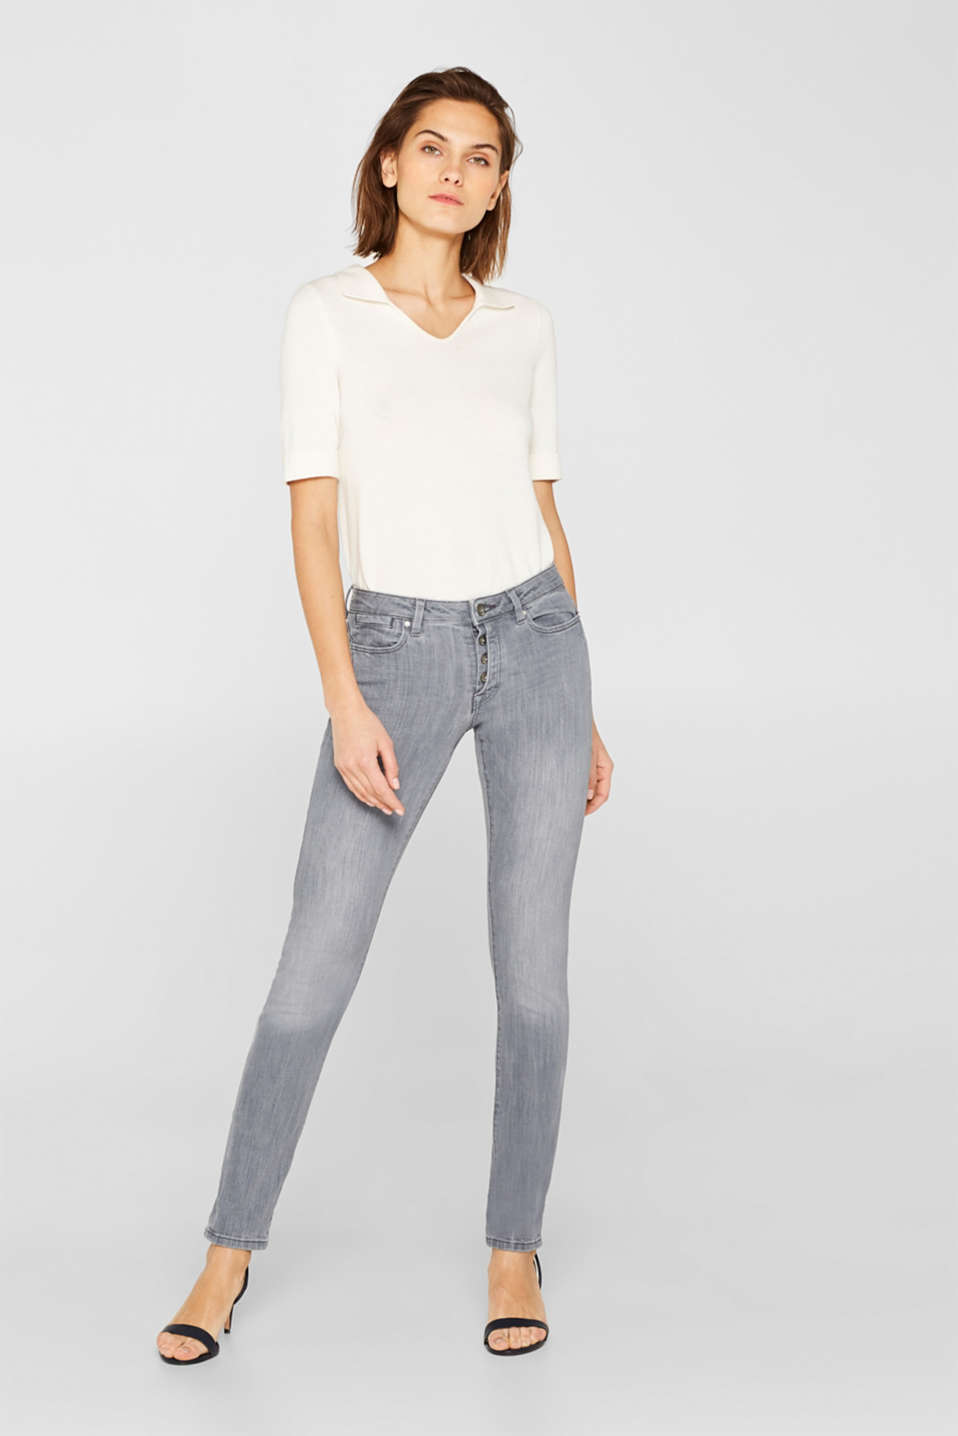 edc - Stretch jeans with a half concealed button placket